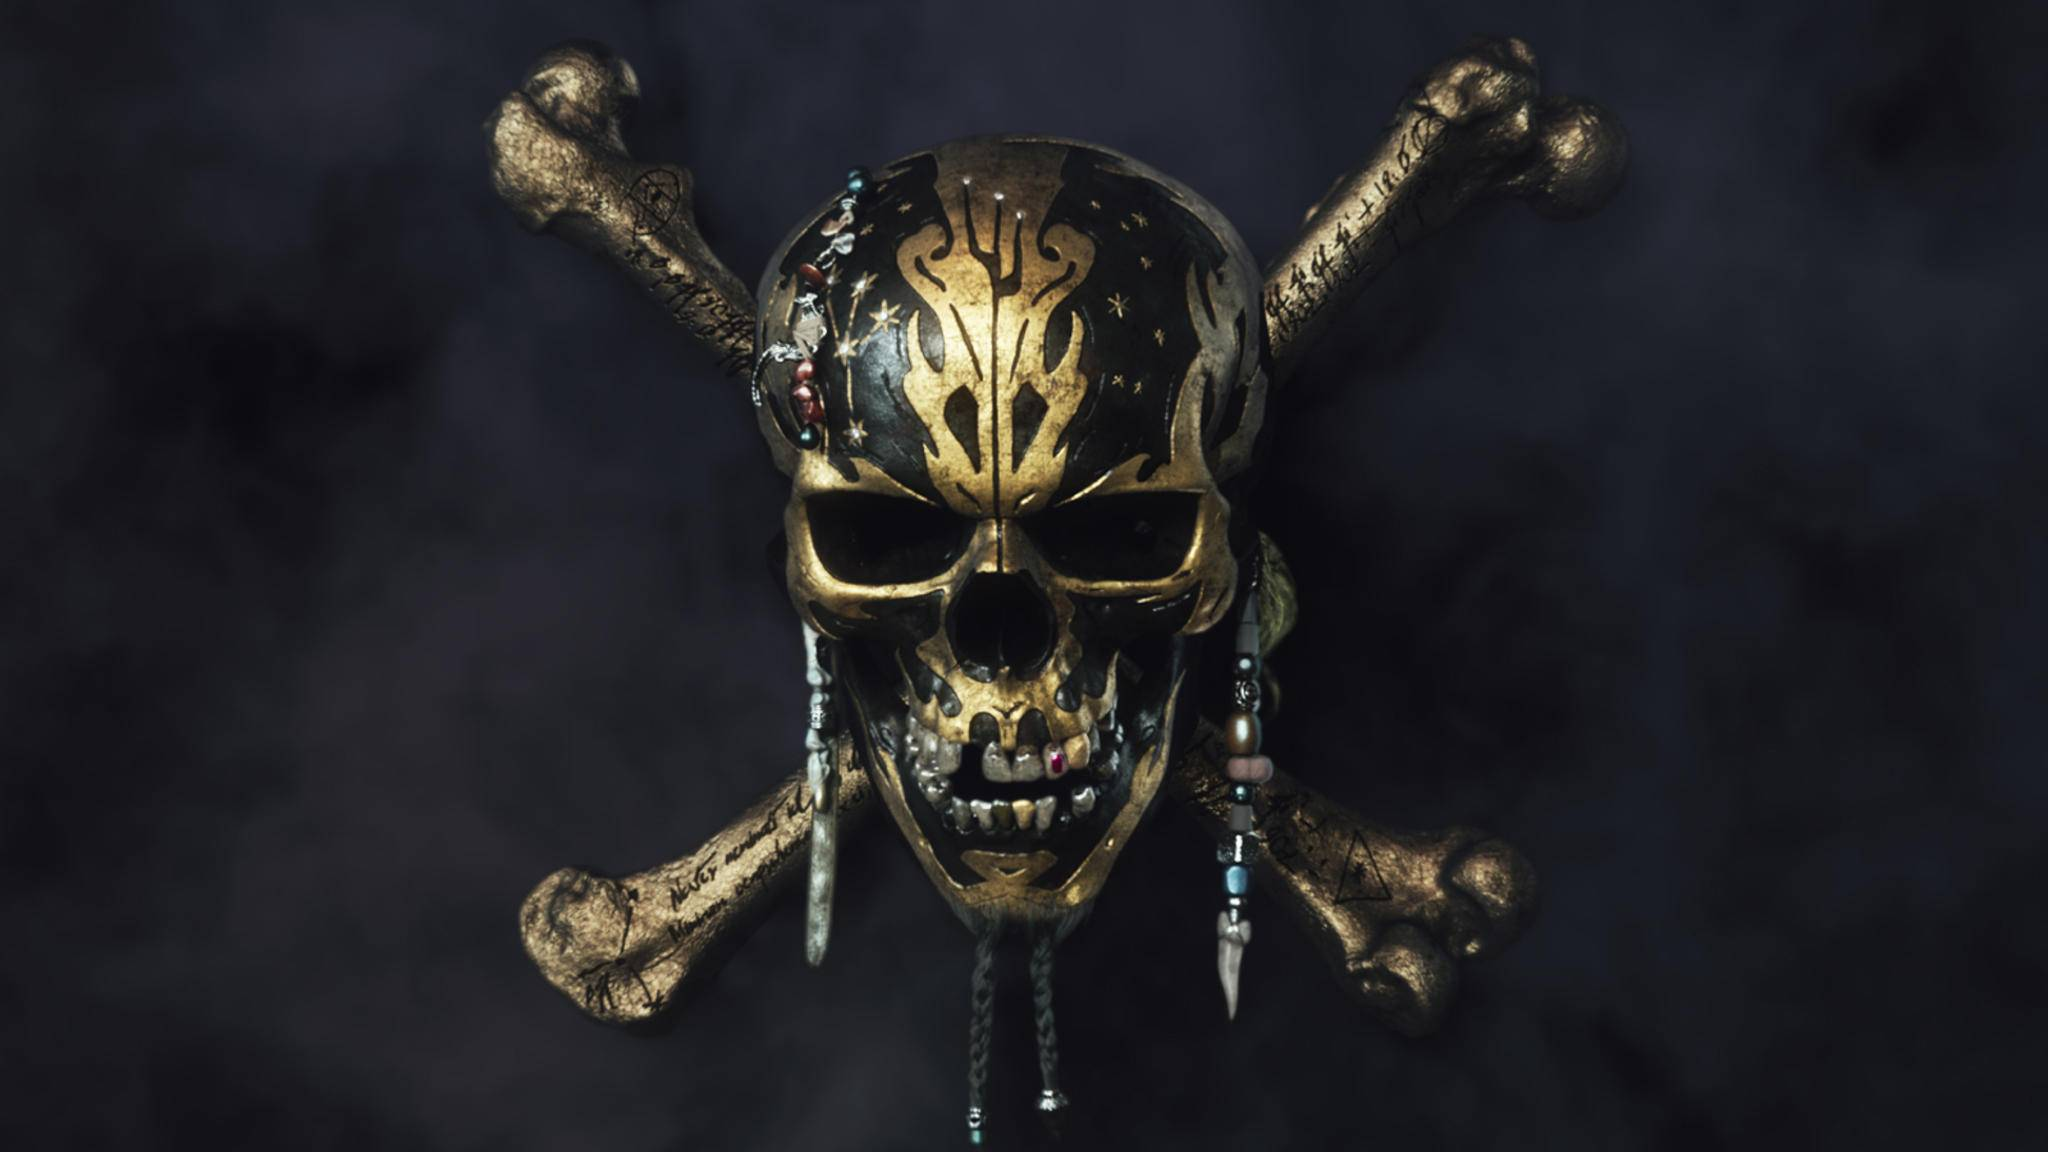 """Pirates of the Caribbean: Salazars Rache"" segelt am 25. Mai in die deutschen Kinos."